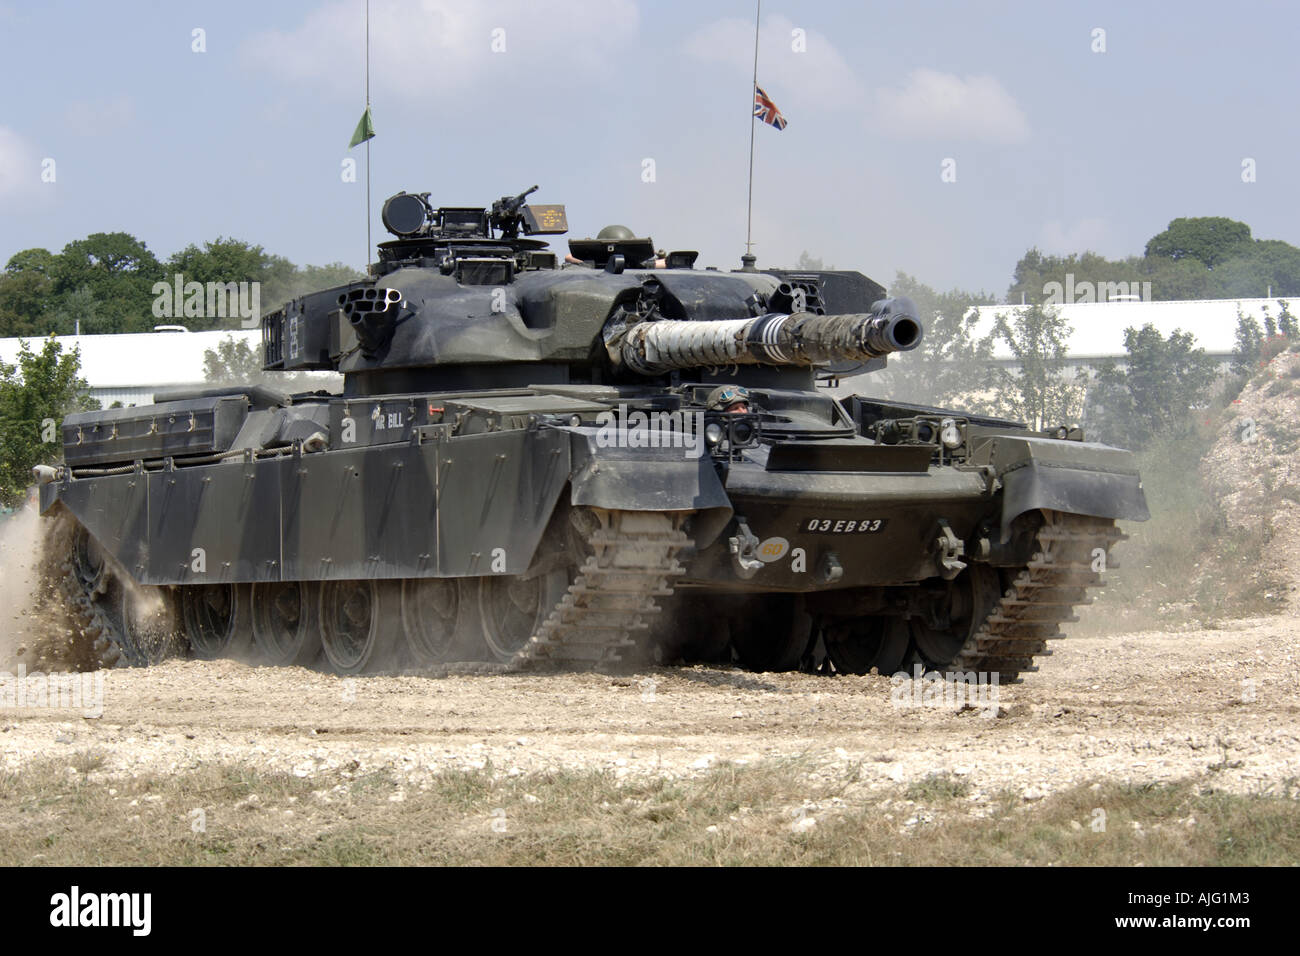 Armored Vehicles For Sale >> Modern day British Army Chieftain tank on manouvers in Europe Stock Photo, Royalty Free Image ...